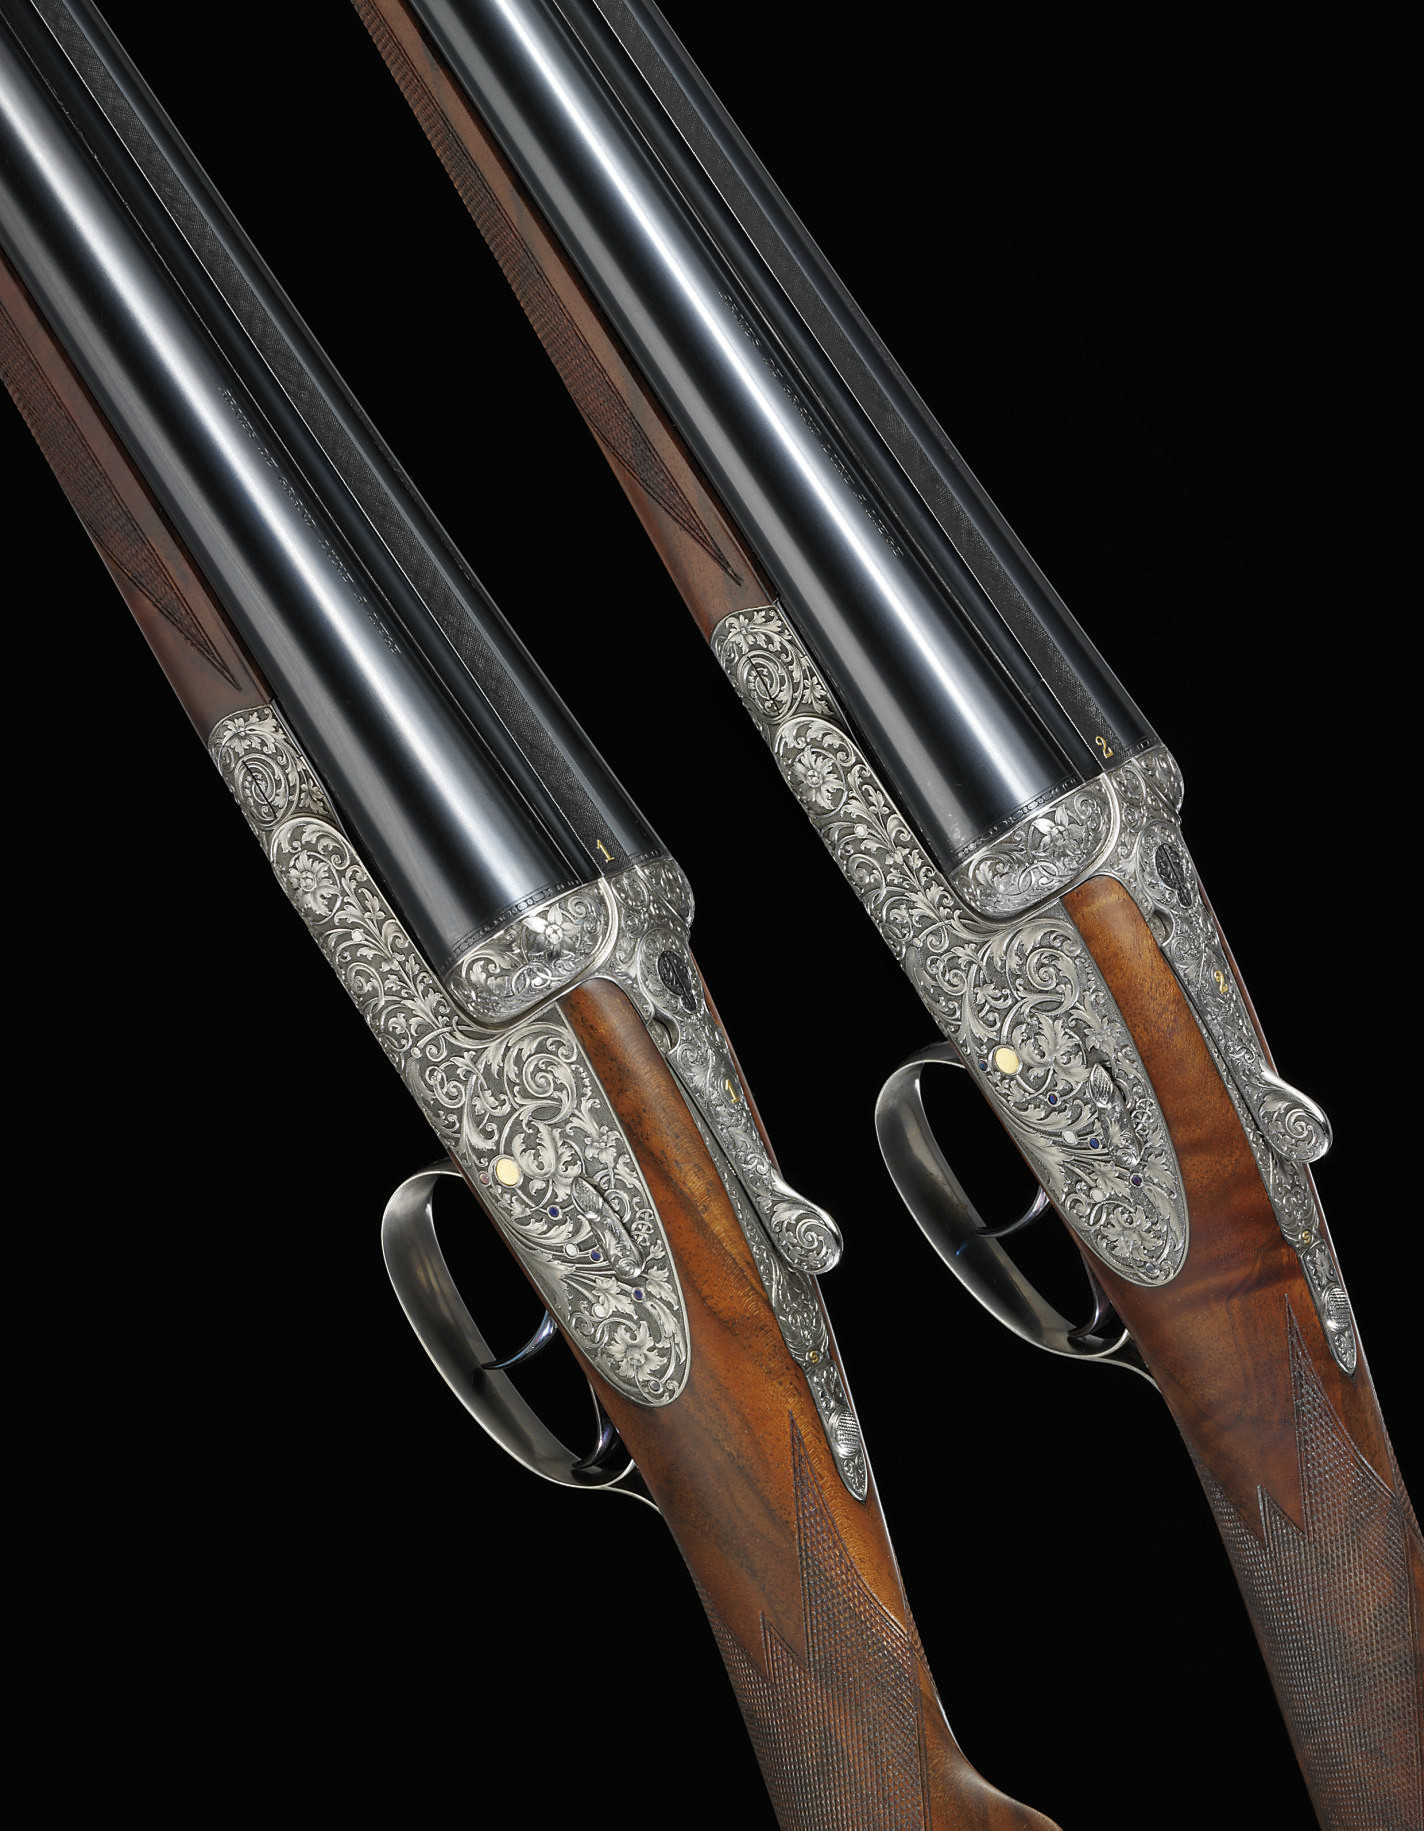 AN EXCEPTIONALLY FINE PAIR OF 12-BORE LOVENBERG ENGRAVED SIDELOCK EJECTOR GUNS BY LEBEAU COURALLY, NOS. 45329 30